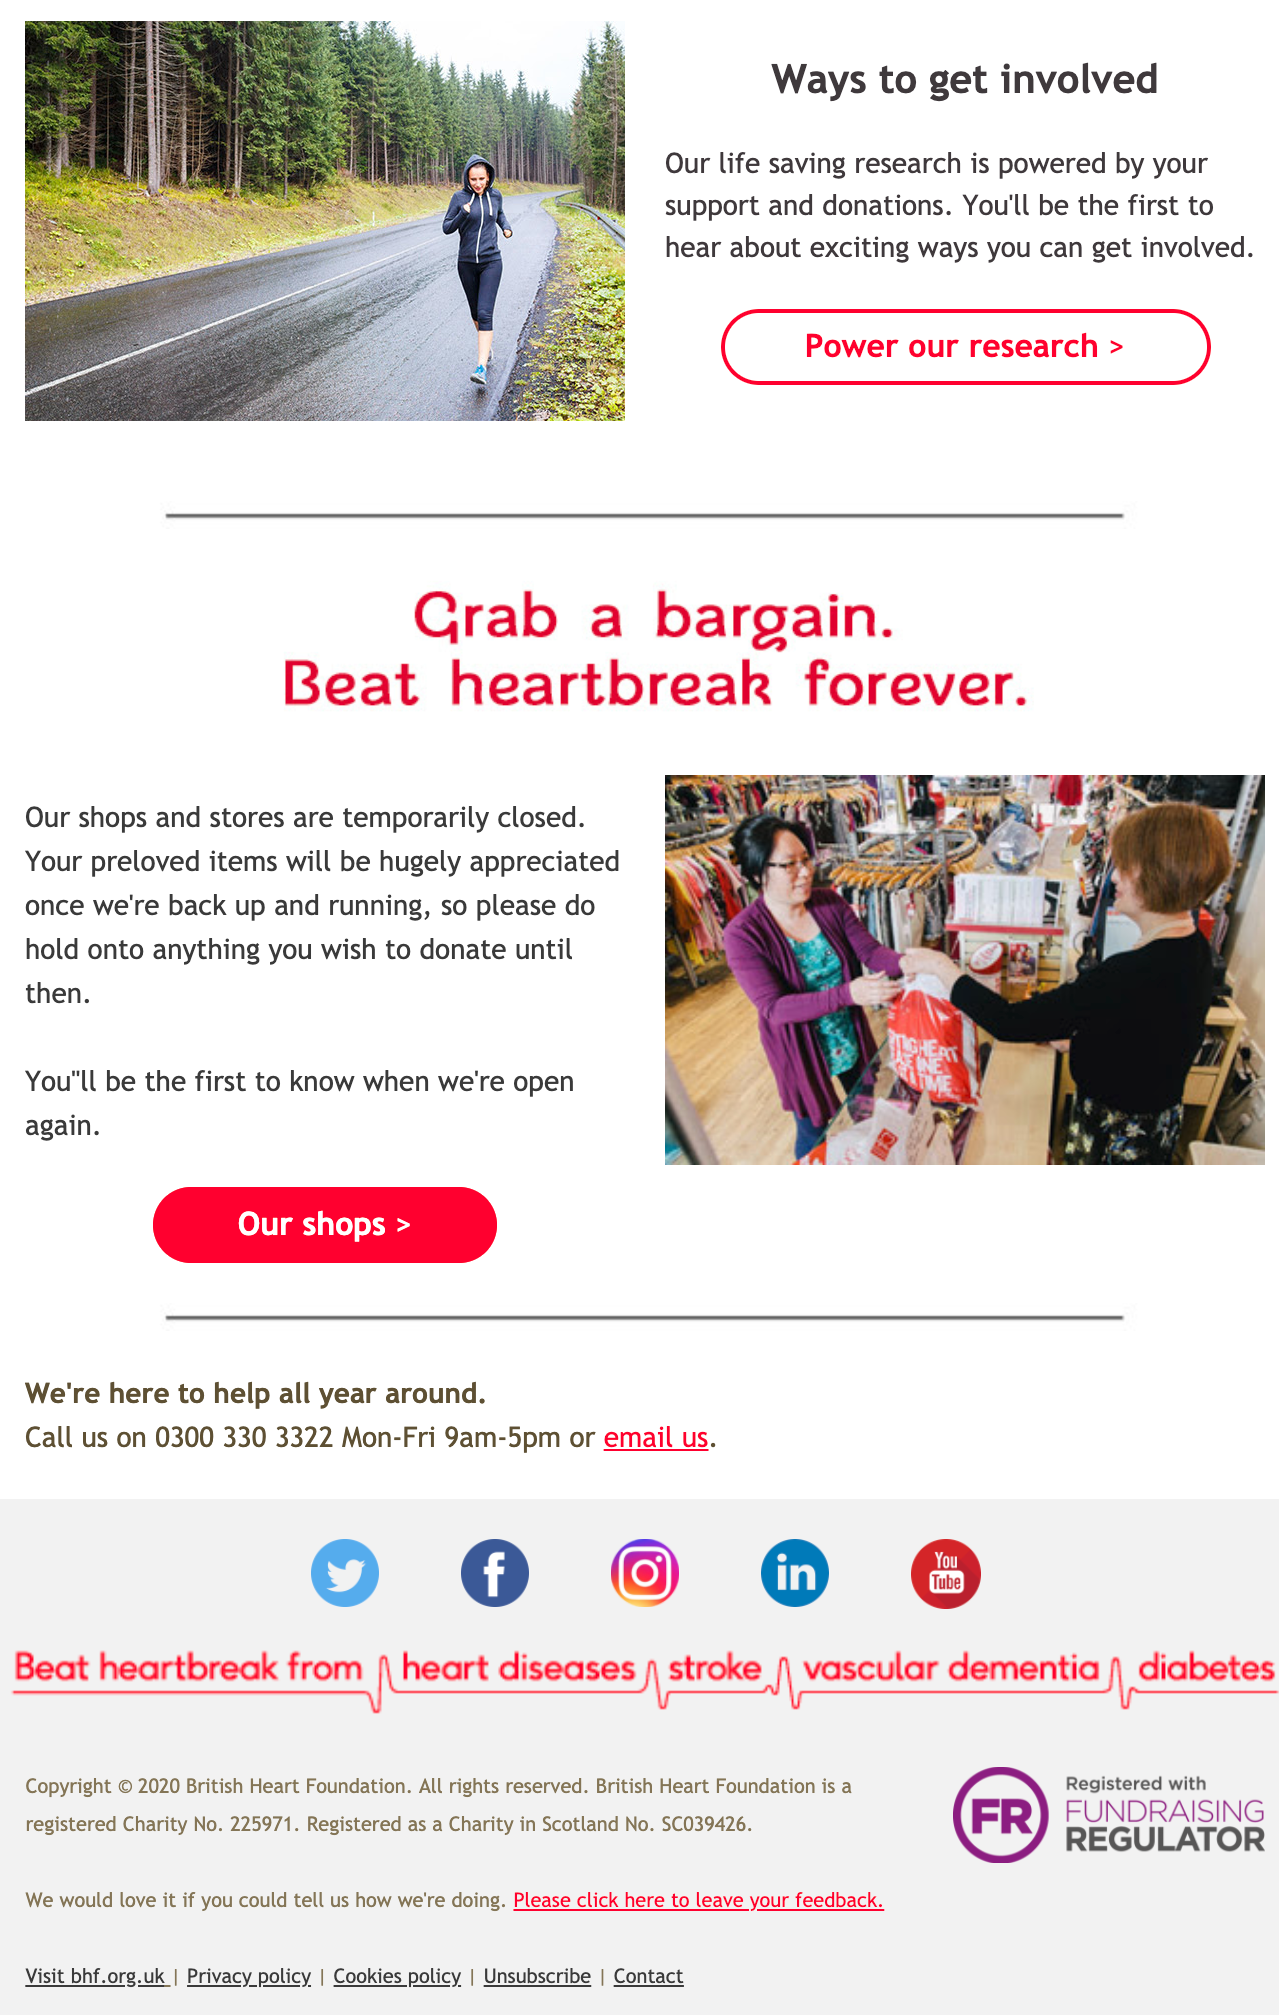 Image of the second half of the BHF's welcome email. This part provides more information on the organisation's donation stores and provides links to their social media platforms.